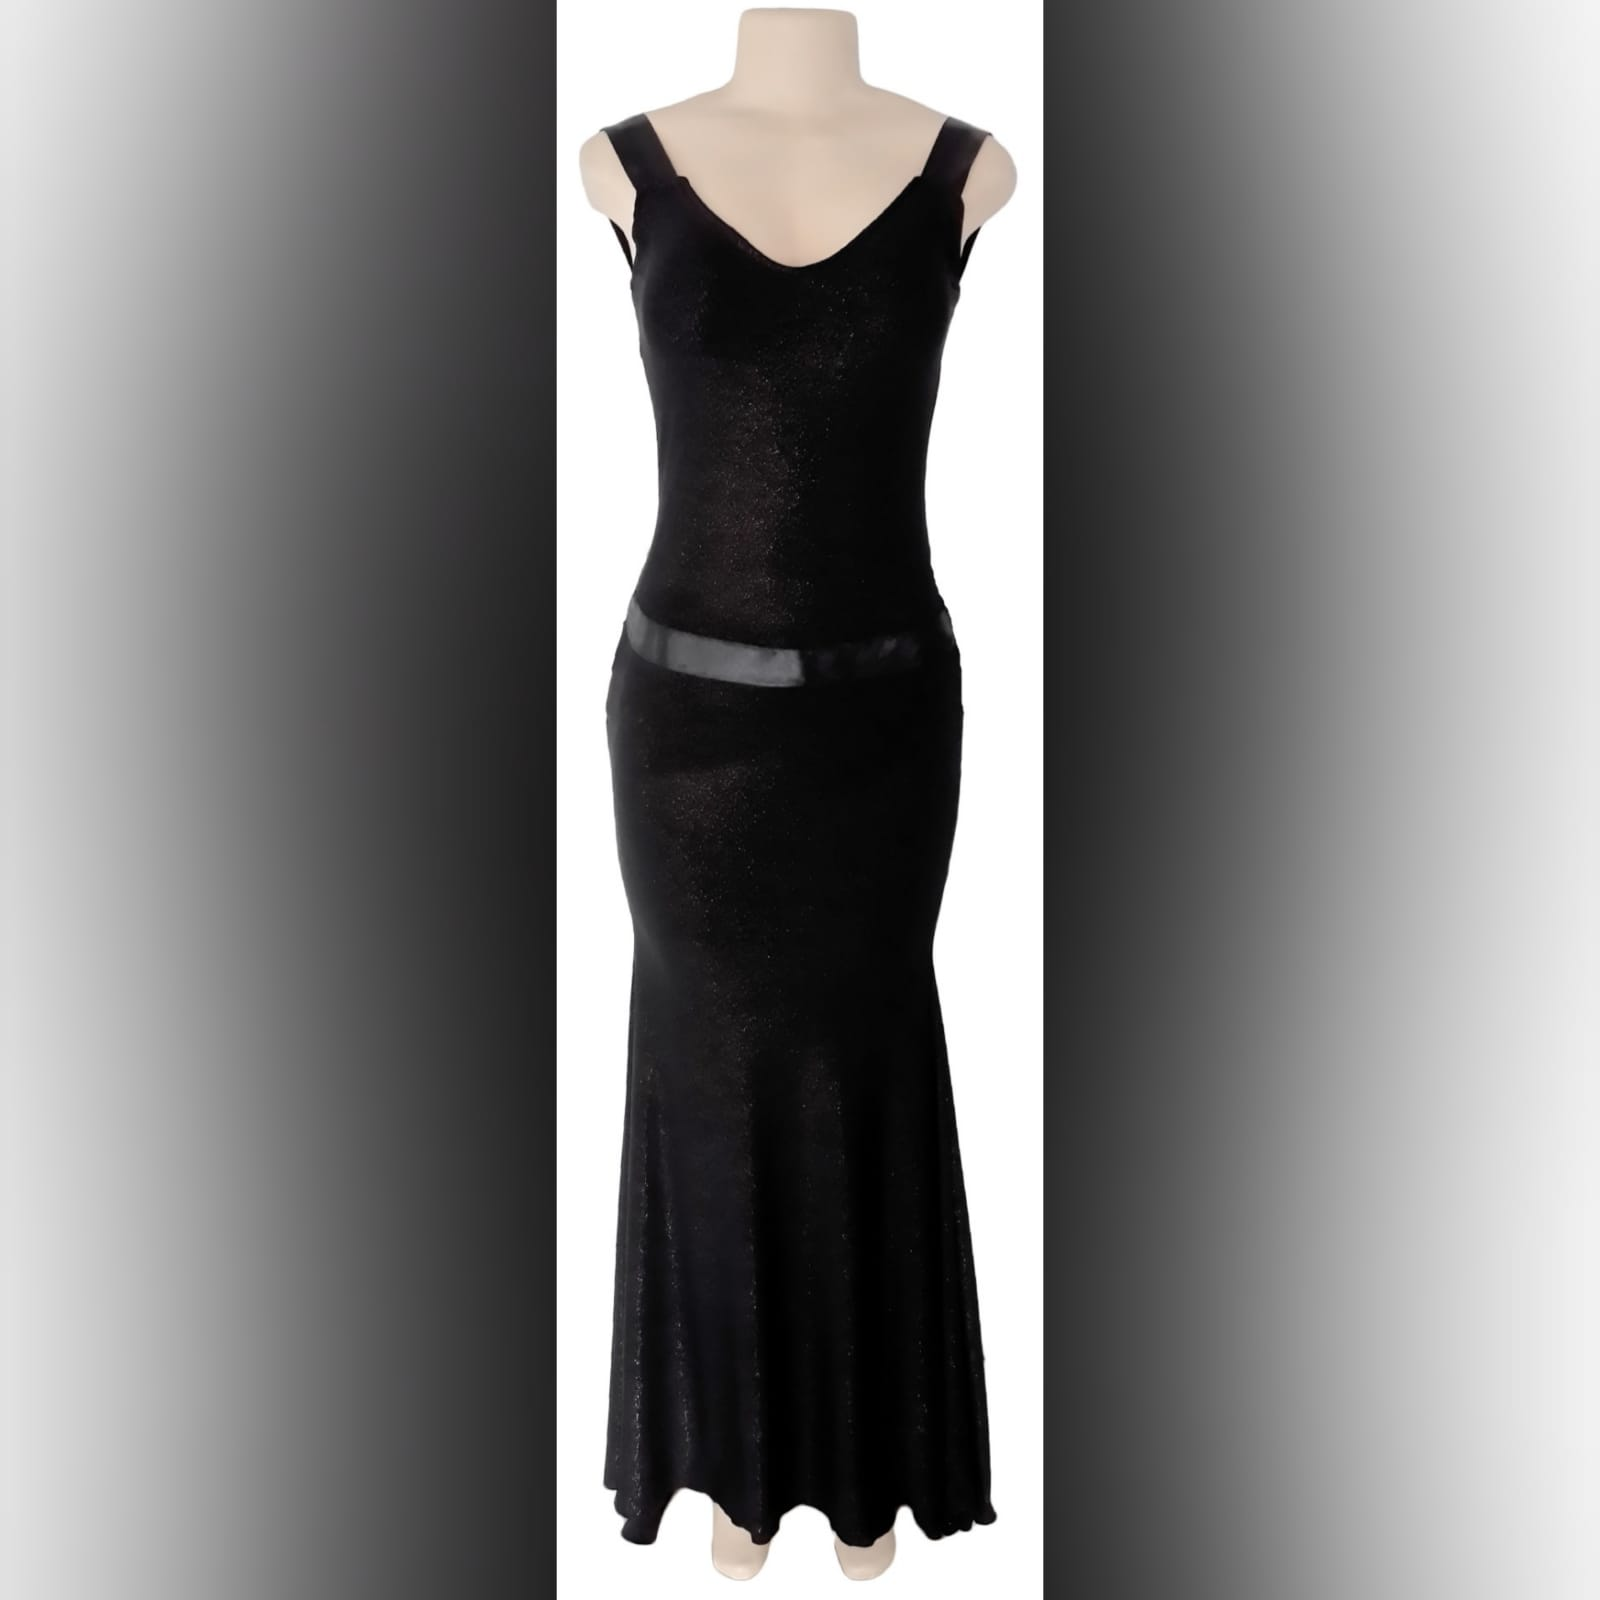 Black shimmer long gala evening dress 3 black shimmer long gala evening dress, with a low v open back. With ribbon creating a belt and a cross at the back